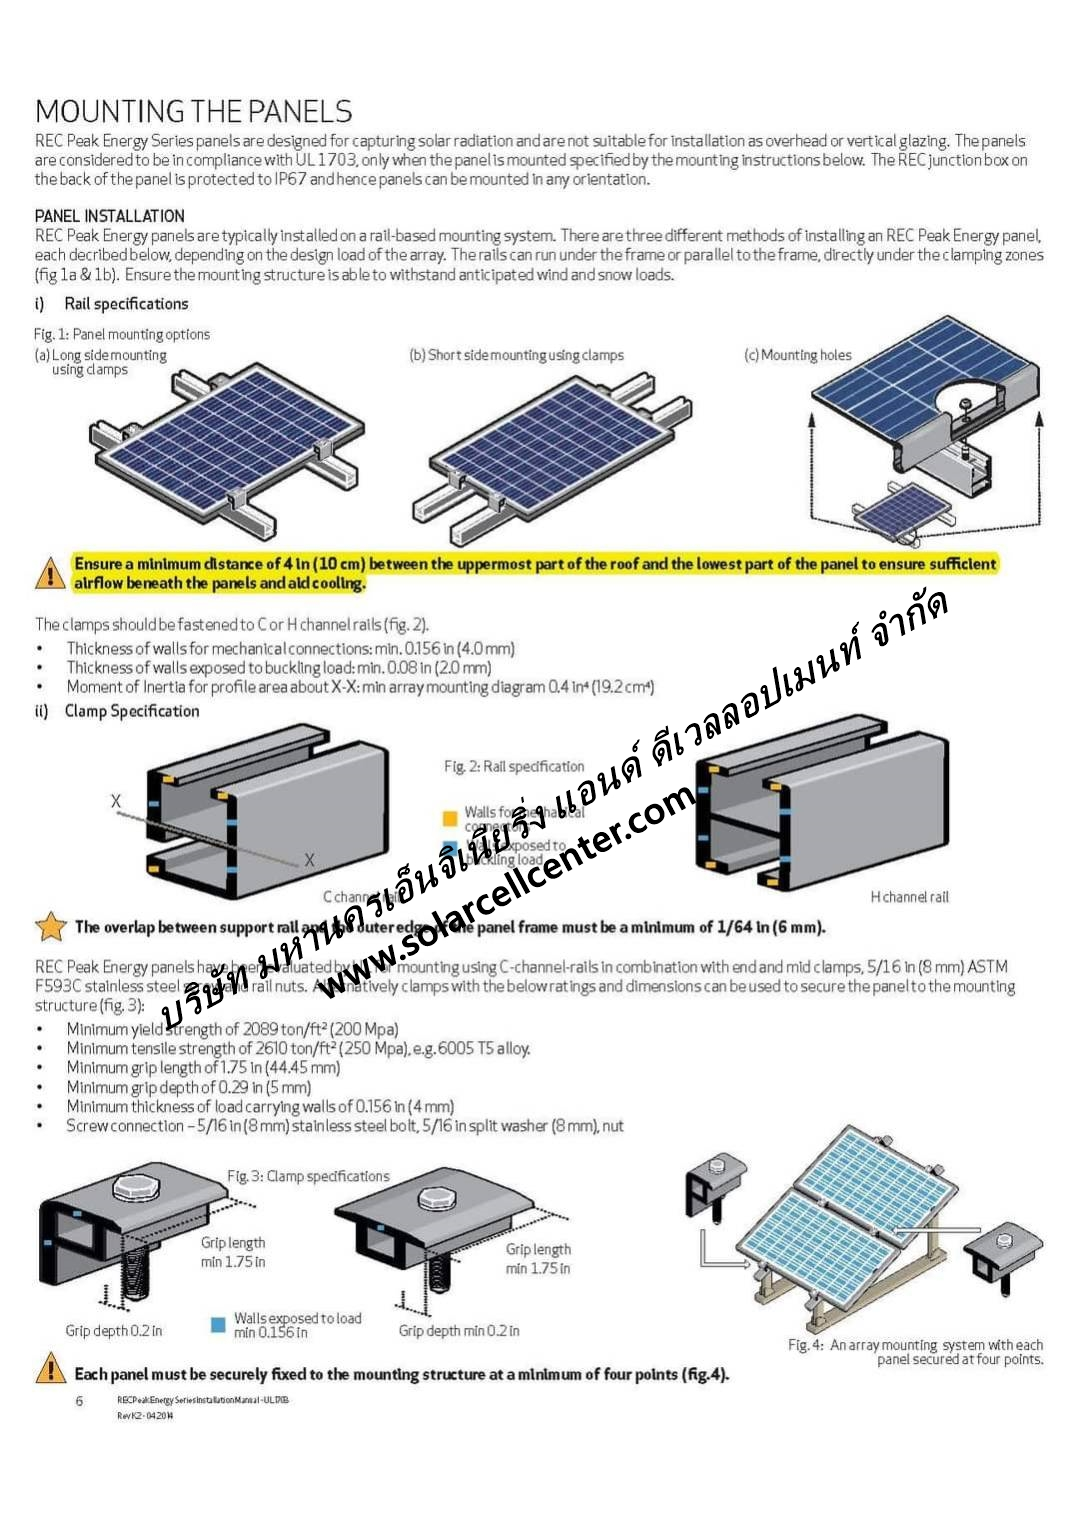 http://solarcellcenter.com/img/cms/Jinko Installation Manual.jpg